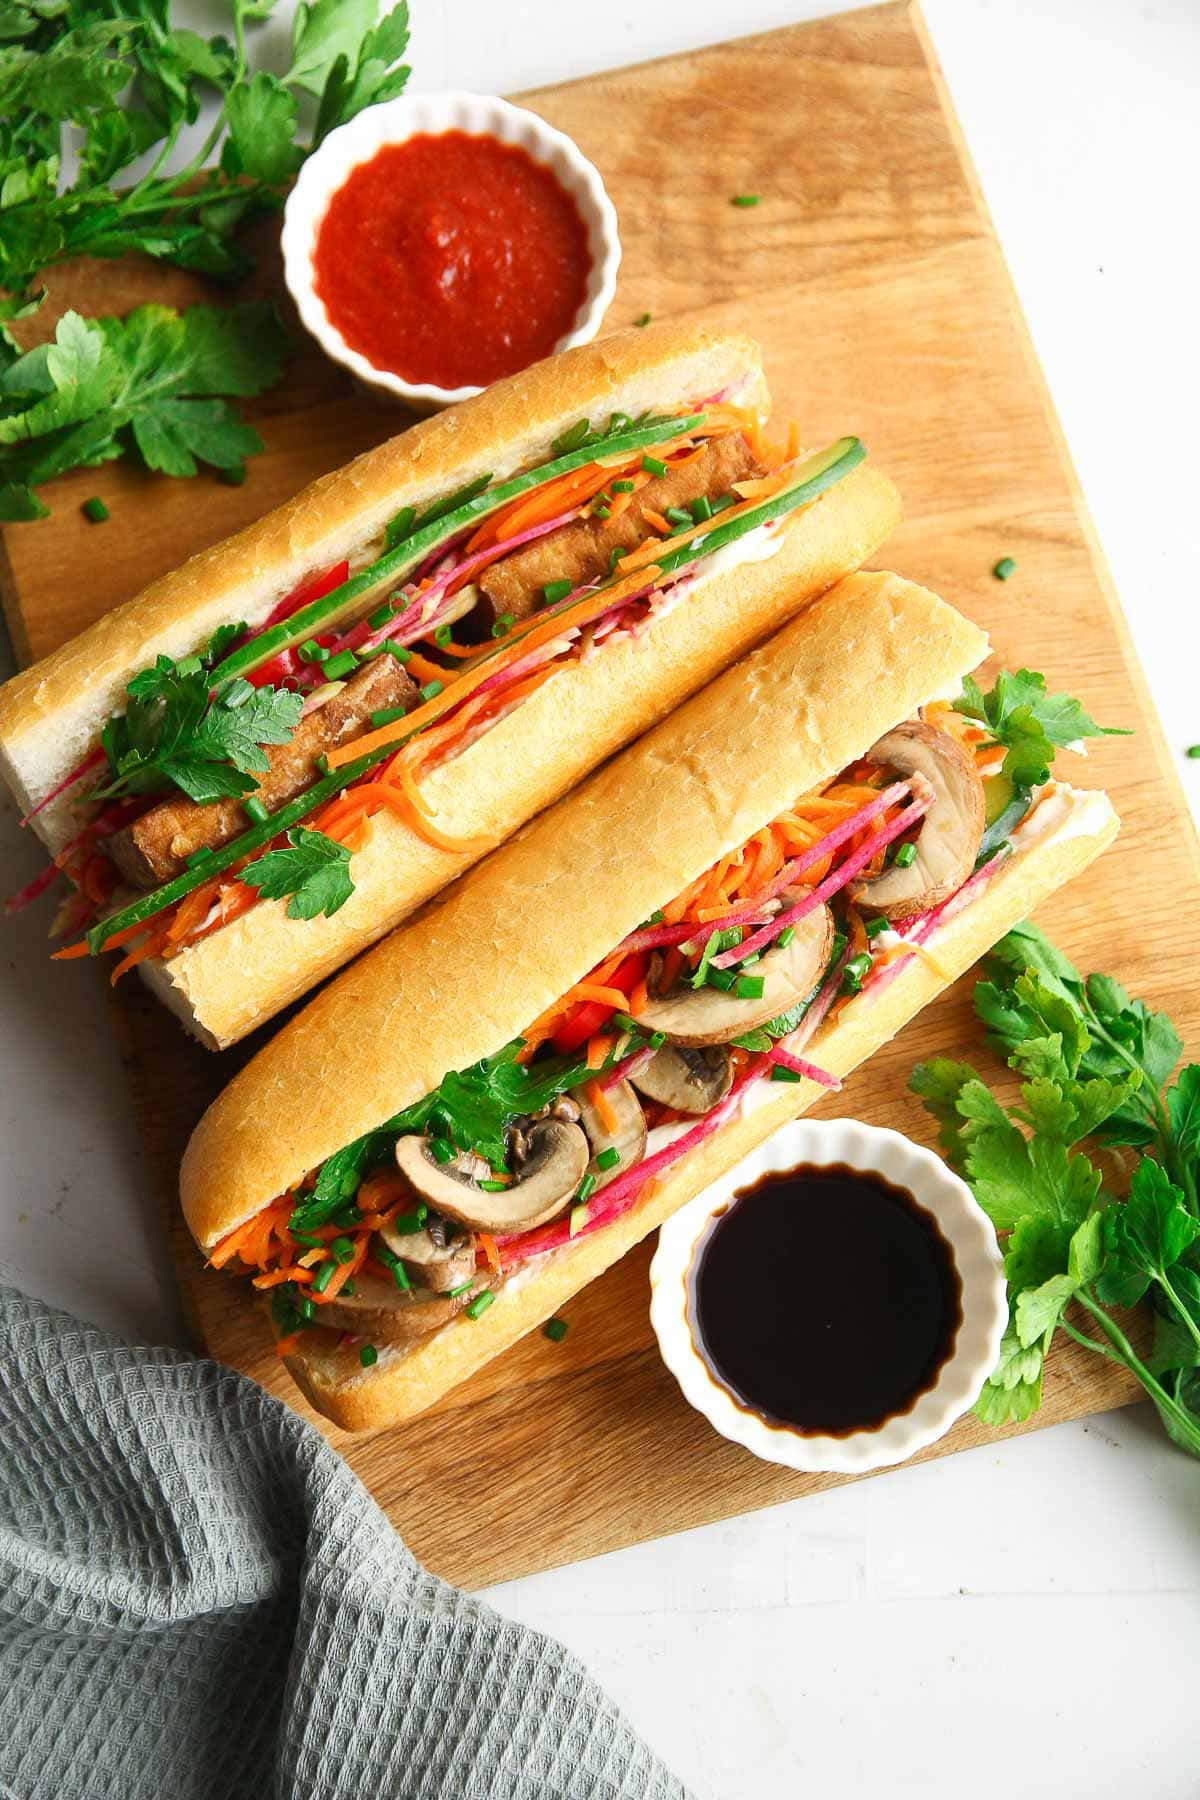 Two vegan banh mi sandwiches made with tofu and mushrooms and filled with pickled vegetables.